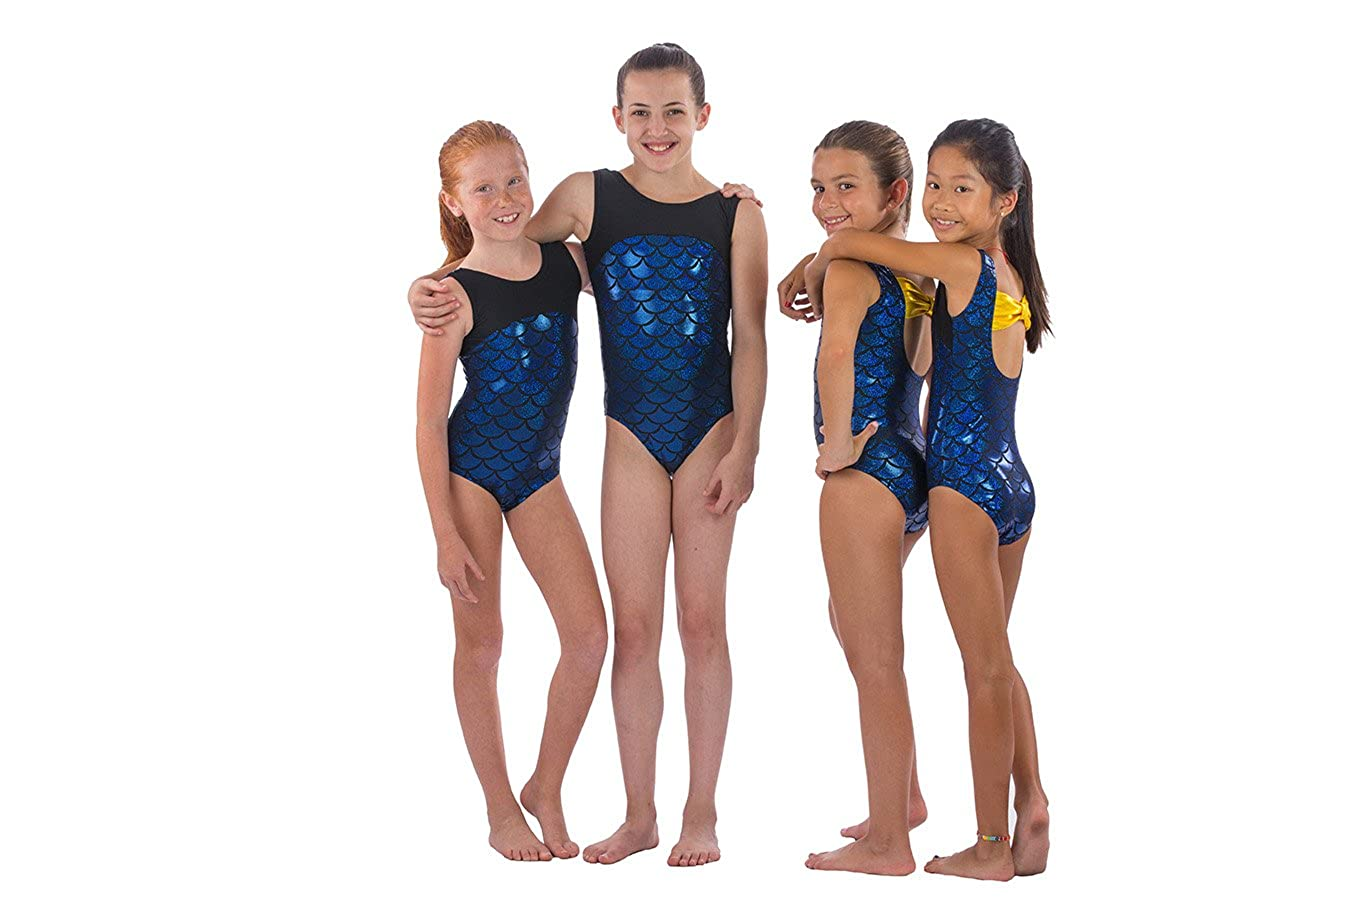 a0c82bdb3 Lizatards Leotard Mermaid Girls Gymnastics Leotard Mermaid Bow Back in  Girls and Adult Sizes Choose Your Favorite